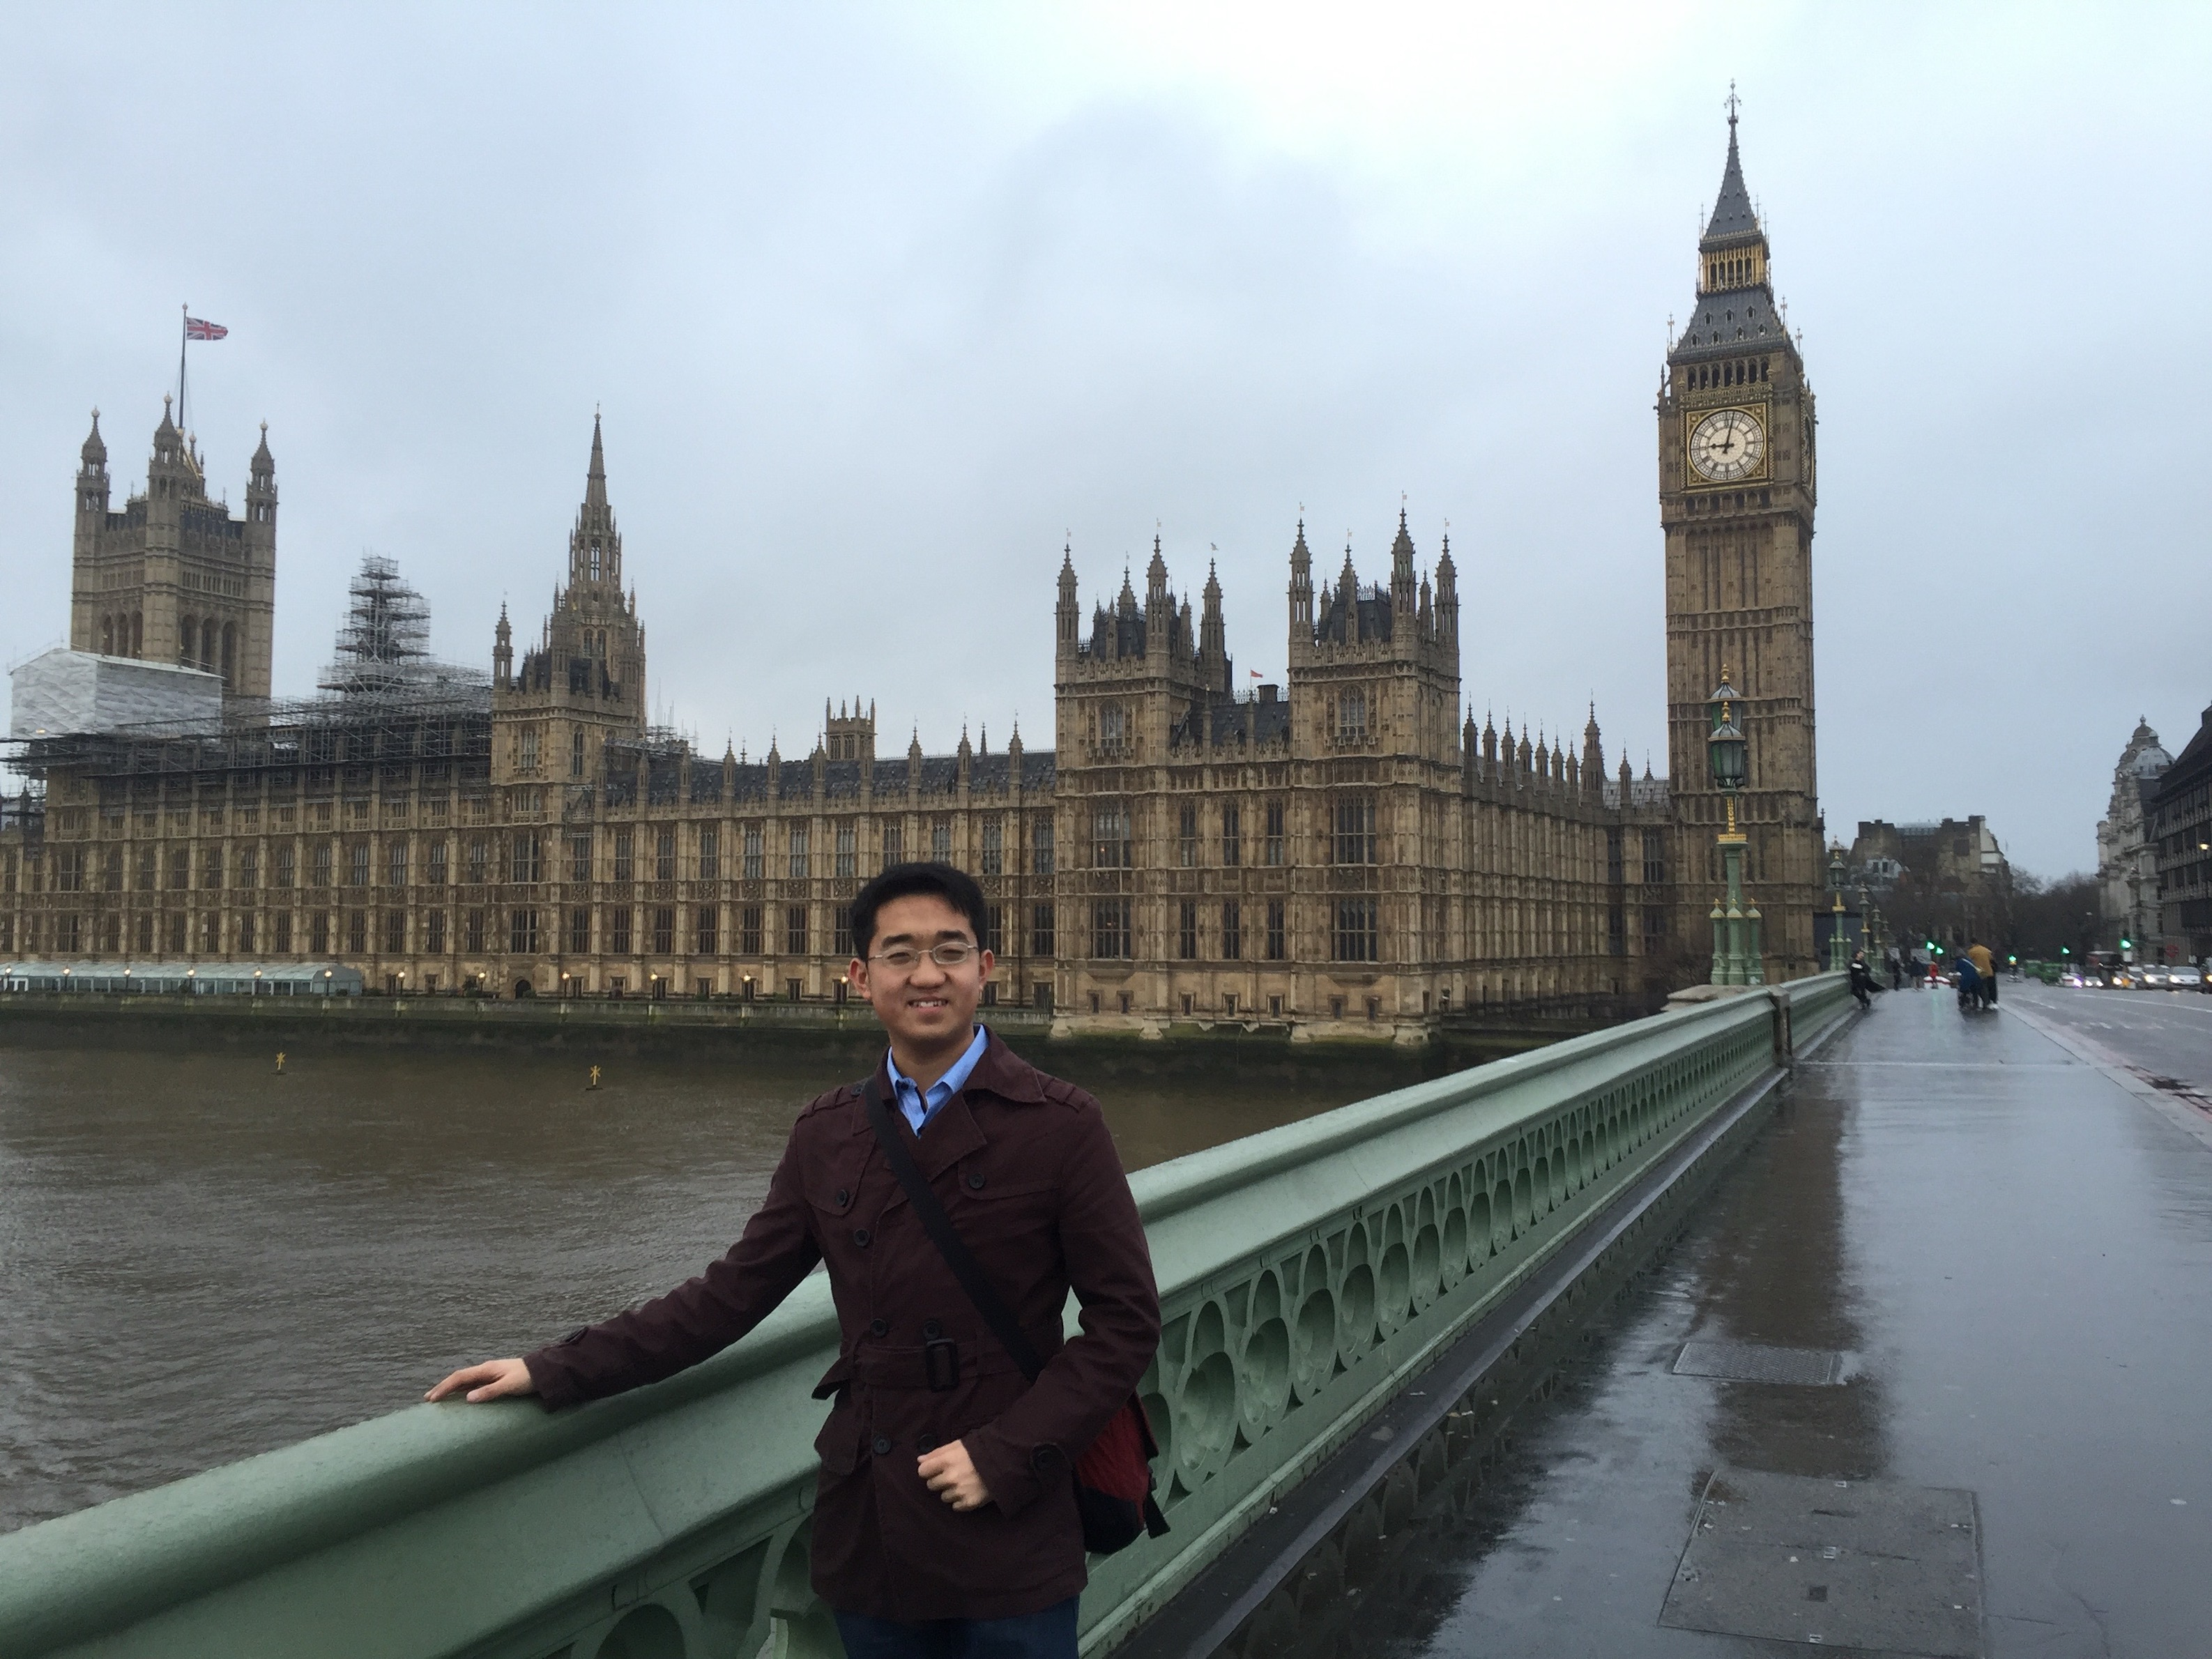 UK_JohnLiang_KCL